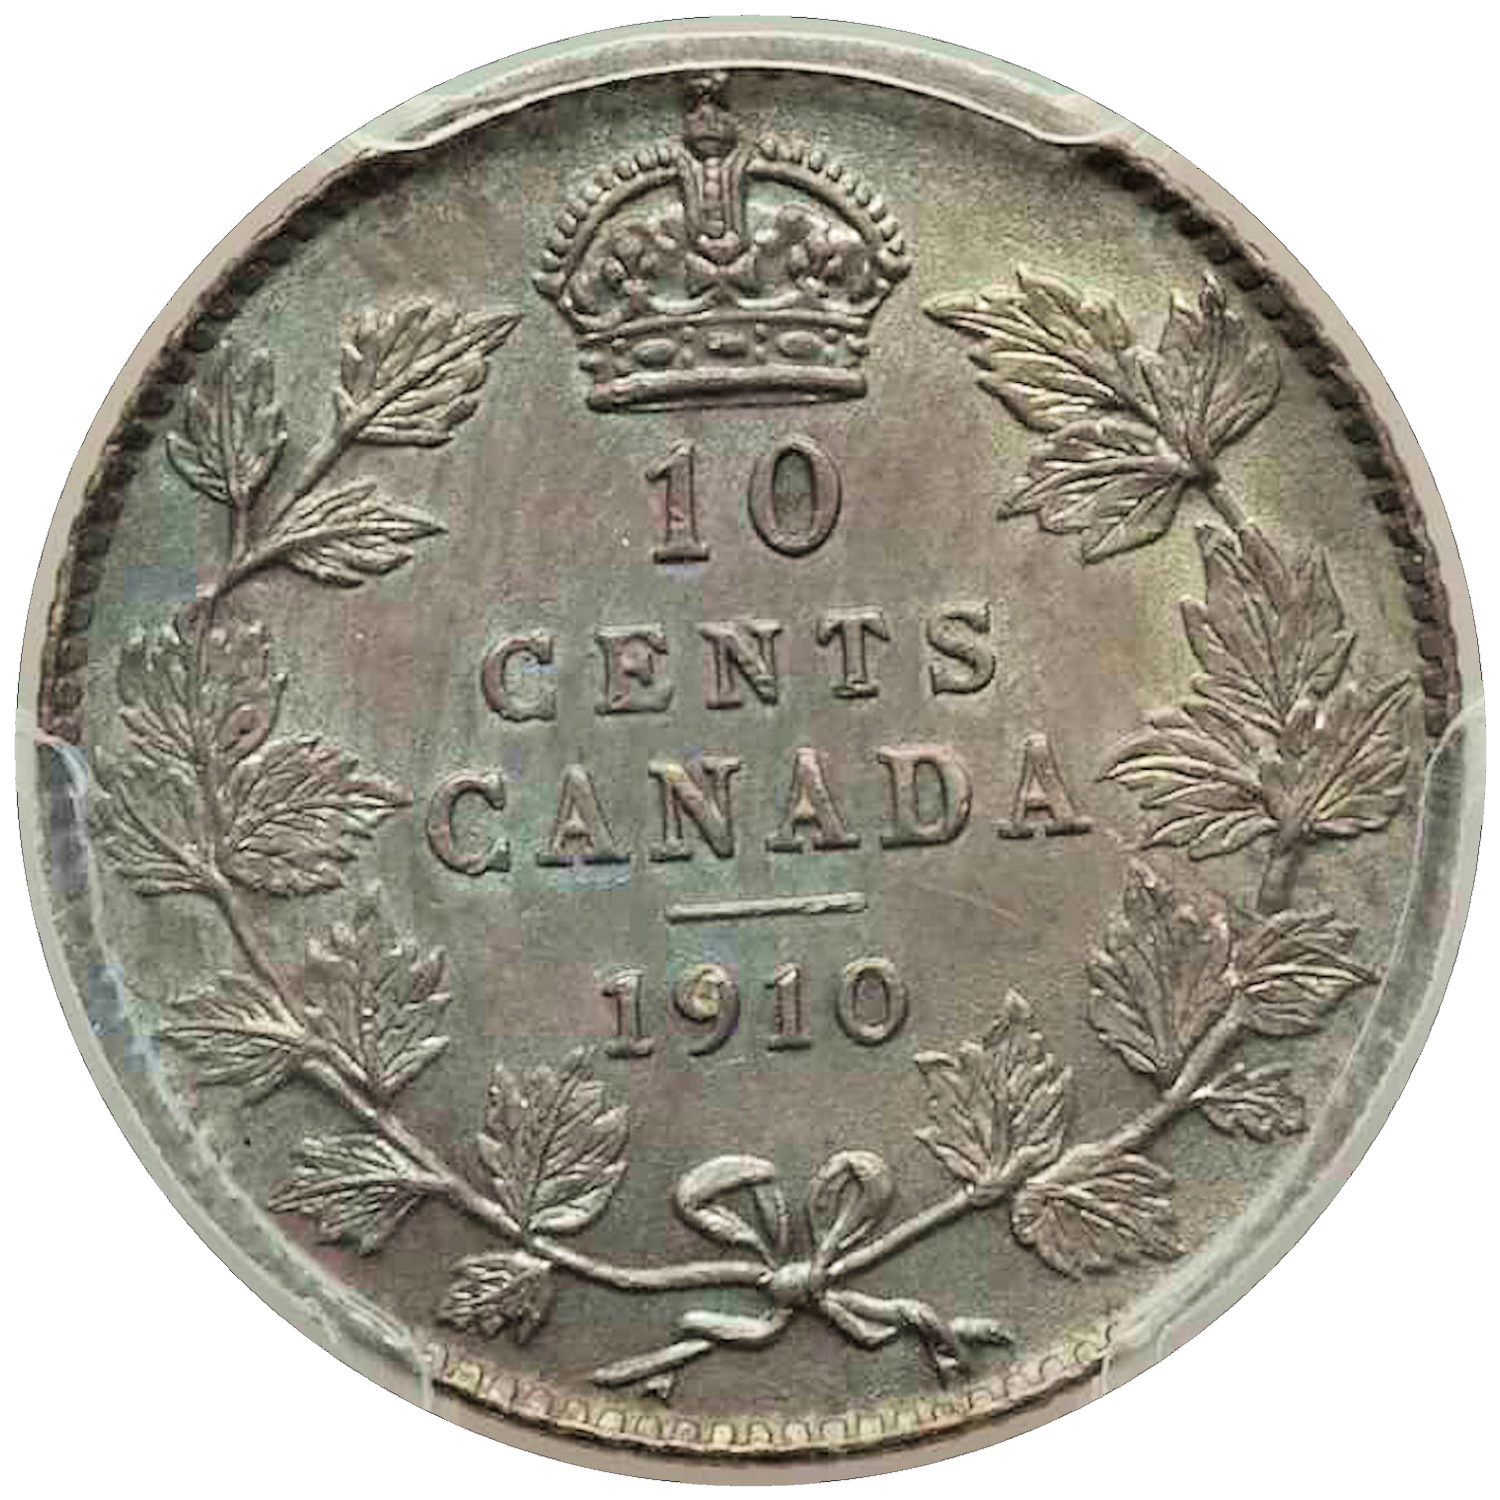 Coins: Canada Other Canadian Coins Canada 10 Cents 1913 Good Grade To Be Distributed All Over The World